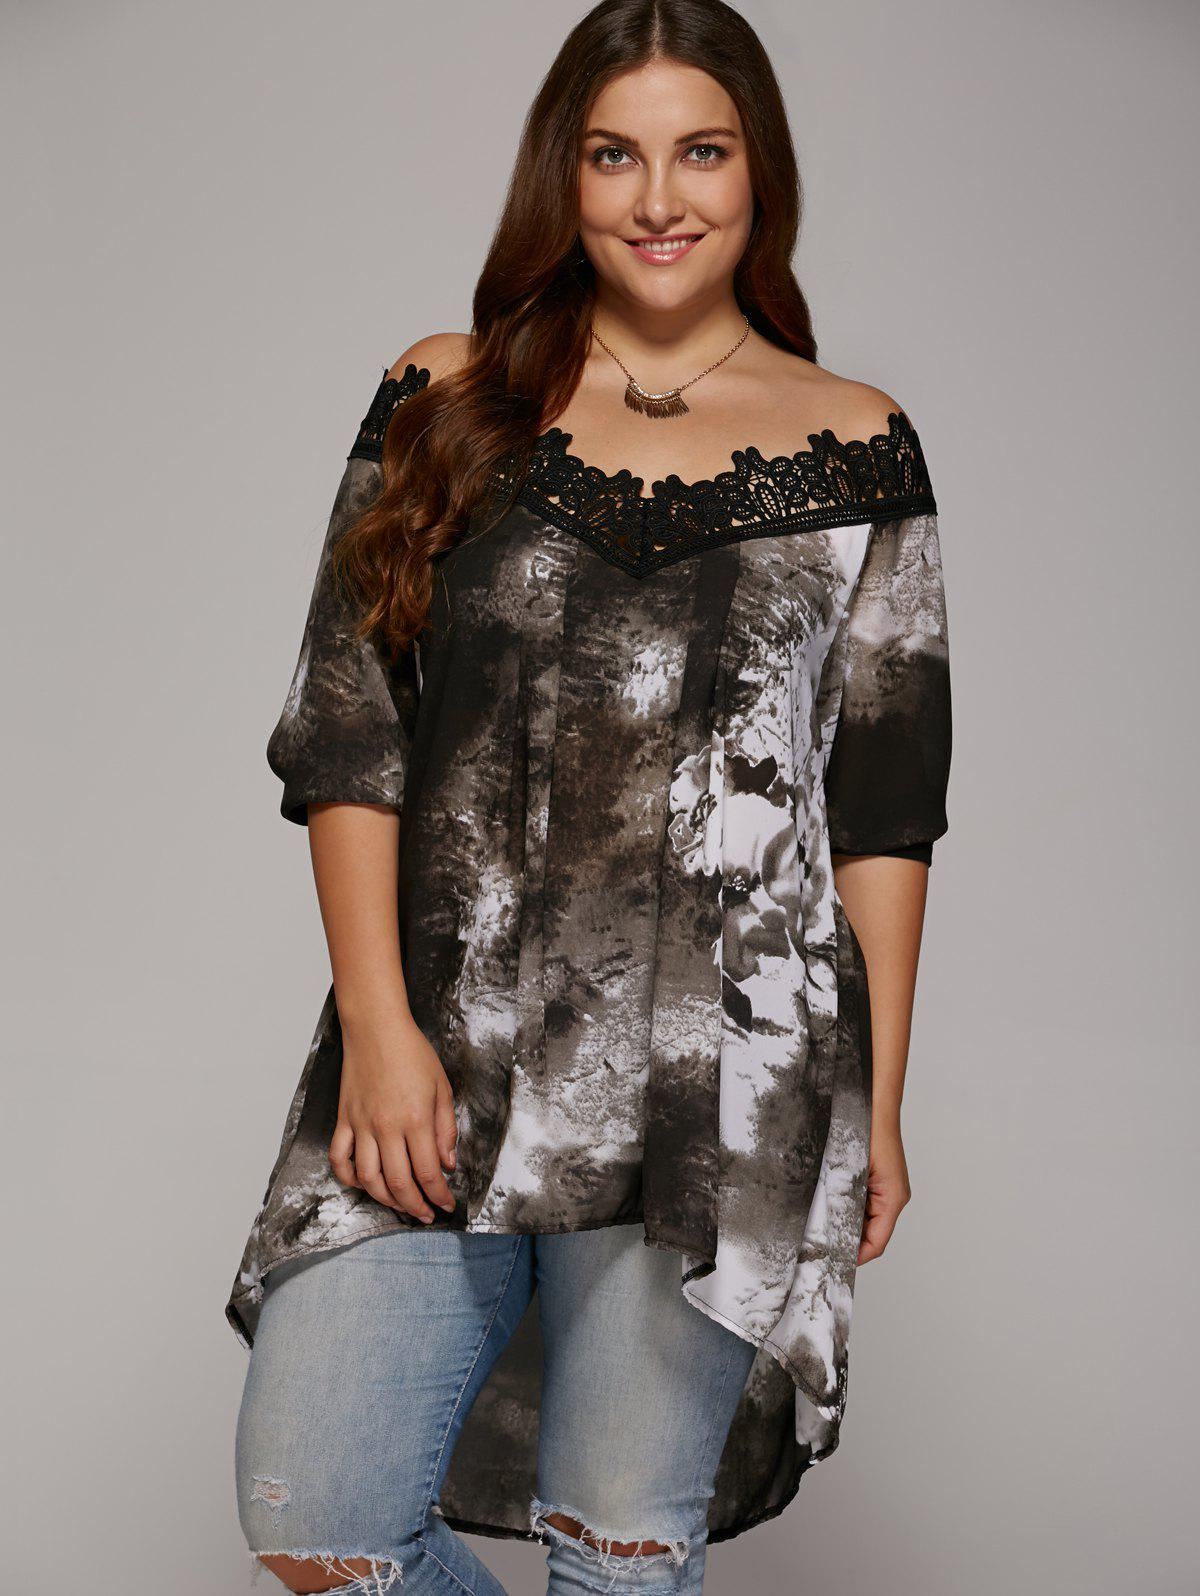 Plus Size Lace Trim High Low Hem BlouseWOMEN<br><br>Size: 2XL; Color: GRAY; Material: Polyester; Shirt Length: Regular; Sleeve Length: Half; Collar: Off The Shoulder; Style: Fashion; Season: Spring,Summer; Embellishment: Lace; Pattern Type: Floral; Weight: 0.2040kg; Package Contents: 1 x Blouse;